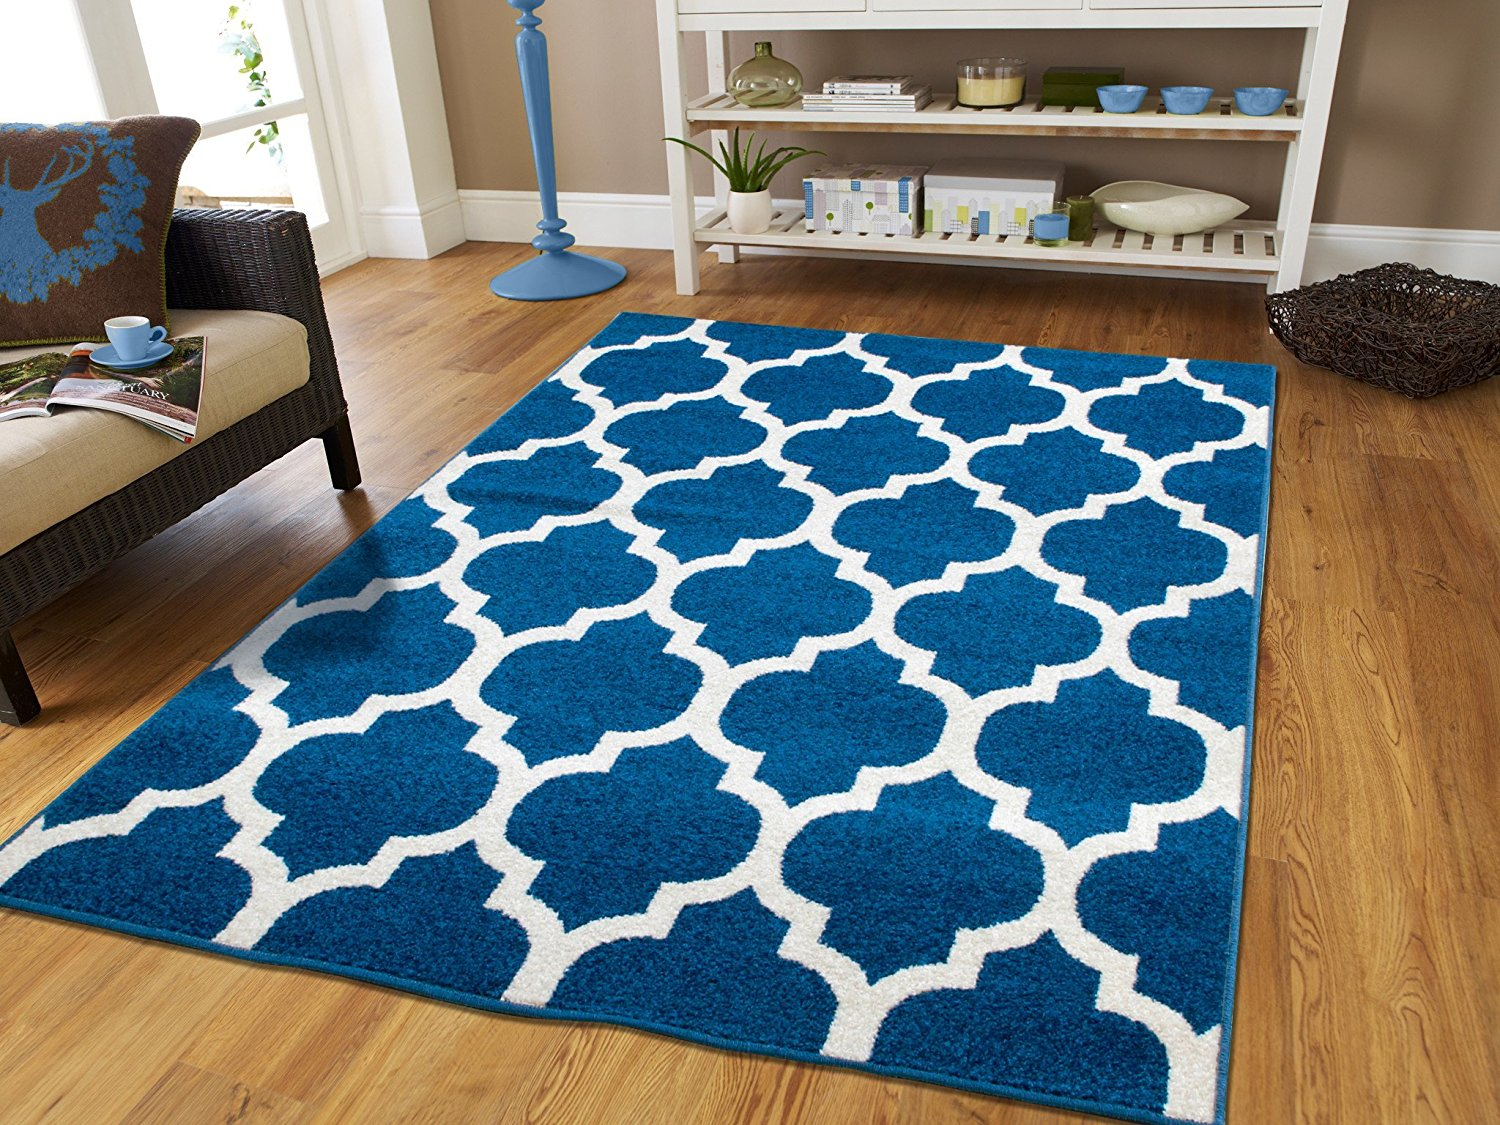 Fashion Luxury Morrocan Trellis Rugs 8x10 Area Rugs On Clearance Blue Rugs  For Living Room 8x11Dining